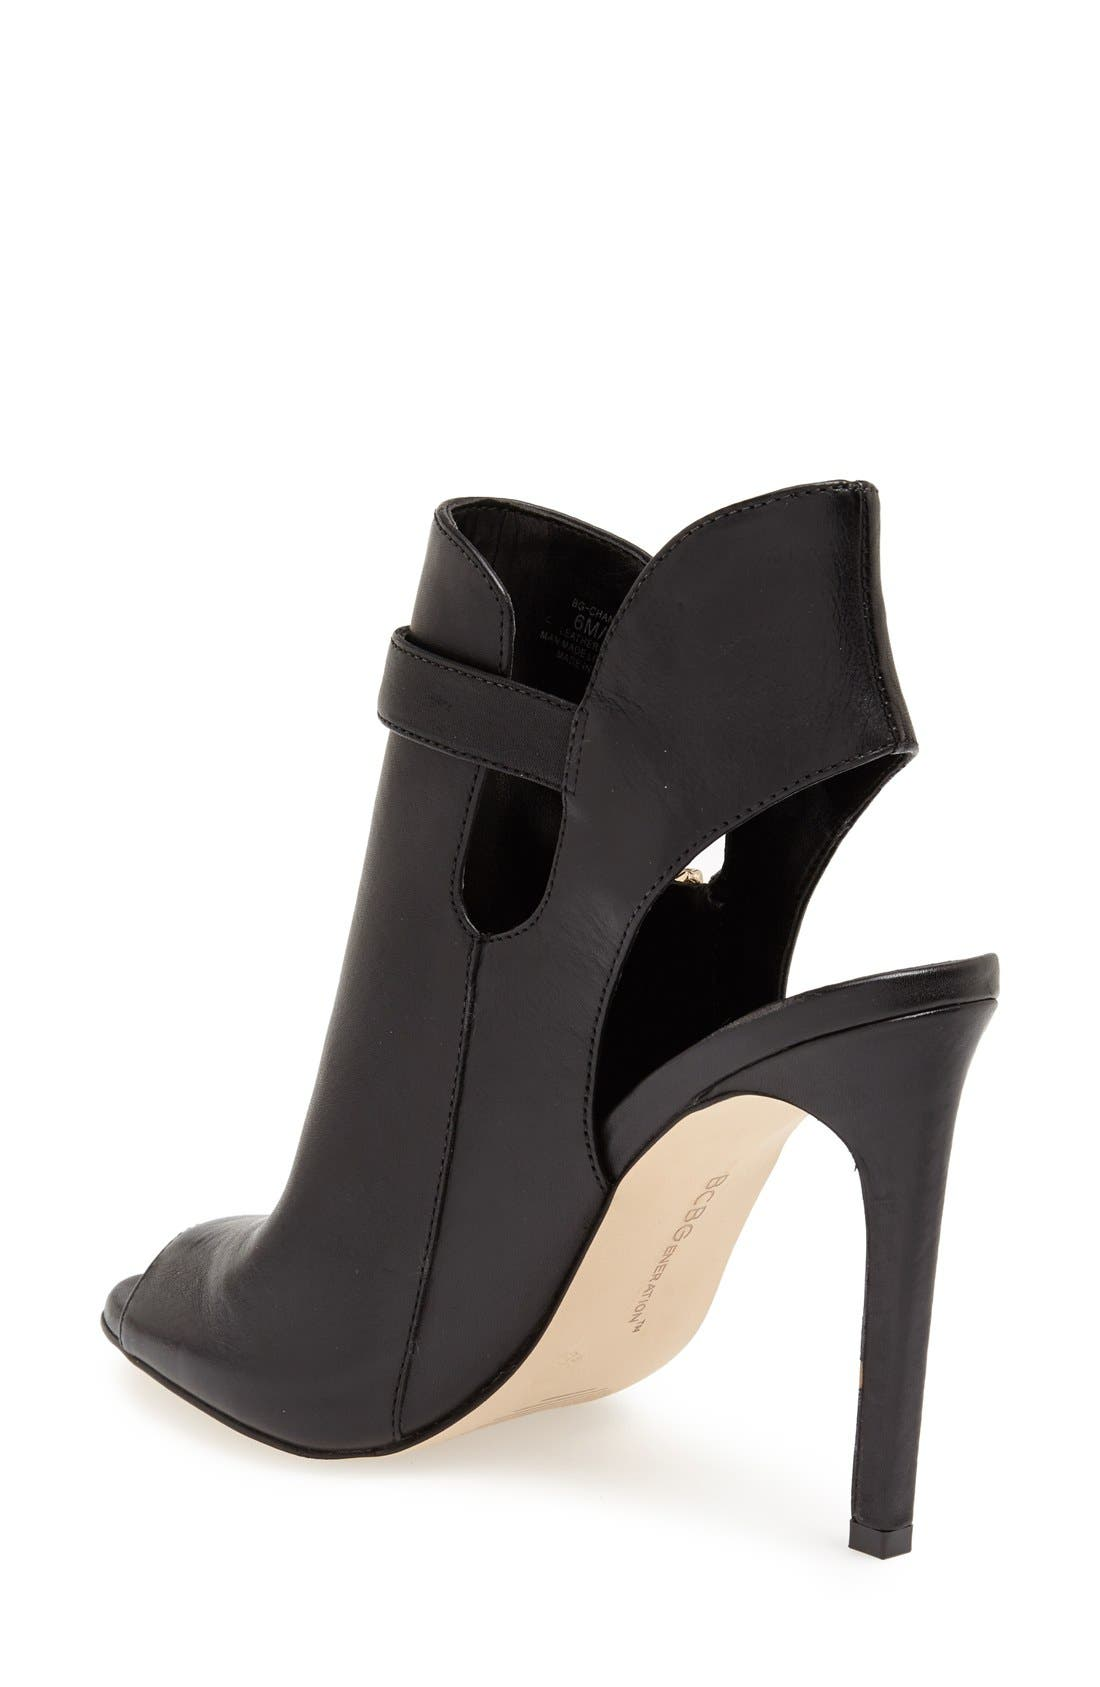 Alternate Image 2  - BCBGeneration 'Chandler' Peep Toe Leather Bootie (Women)